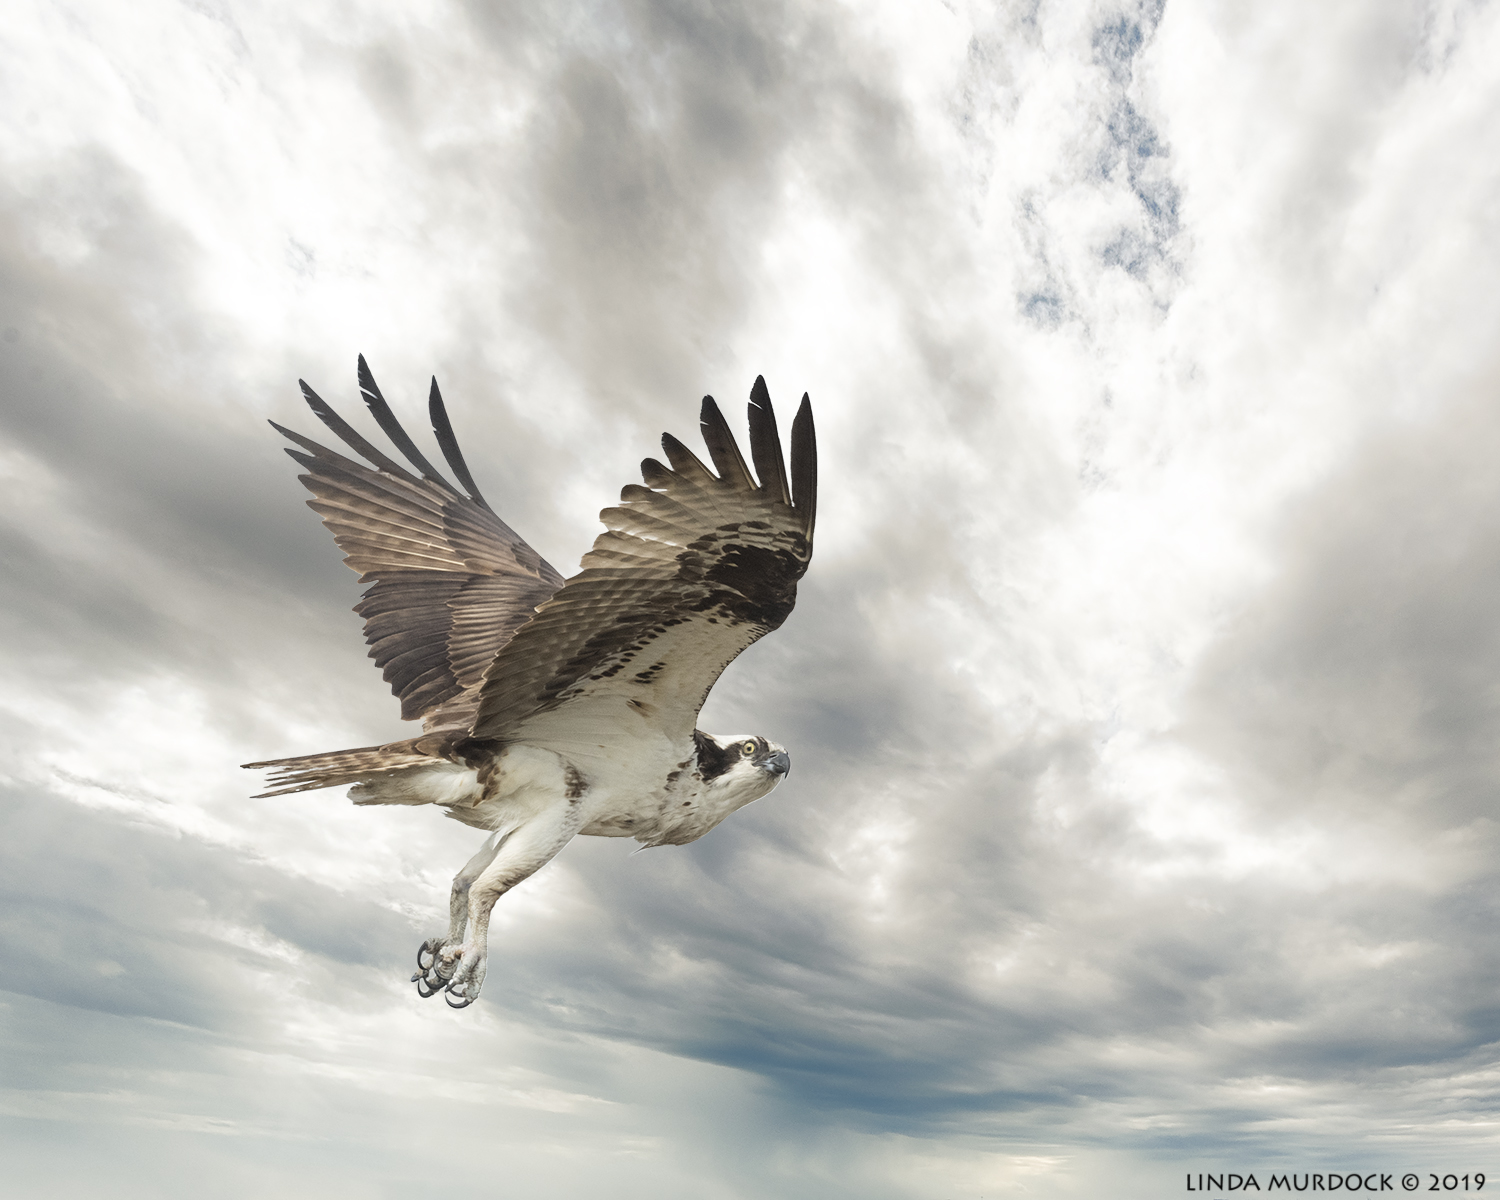 Osprey was flying against a milky white boring sky.